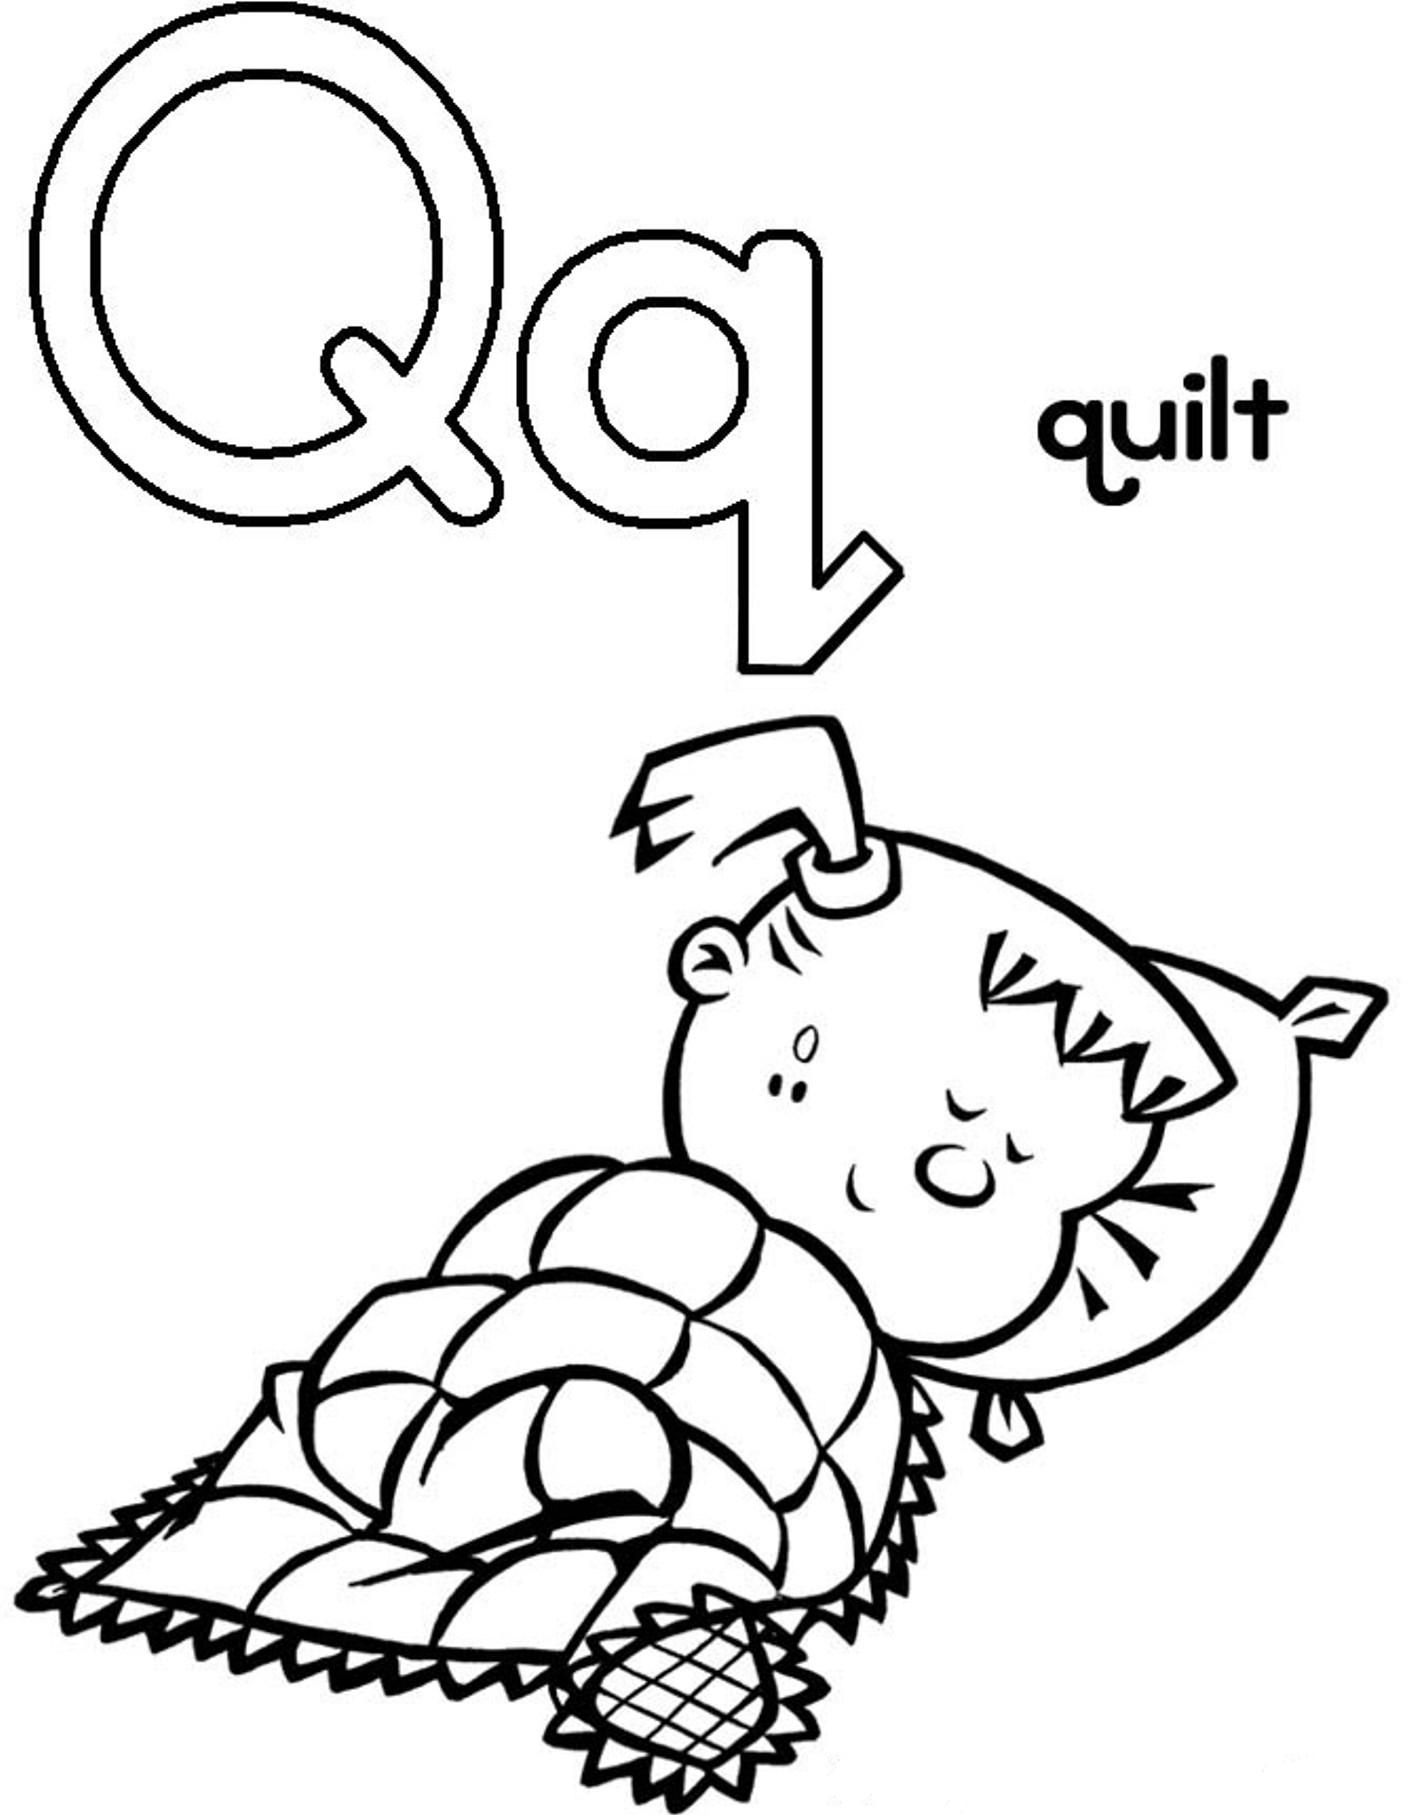 coloring page quilt quilt coloring pages for adults coloring pages page coloring quilt